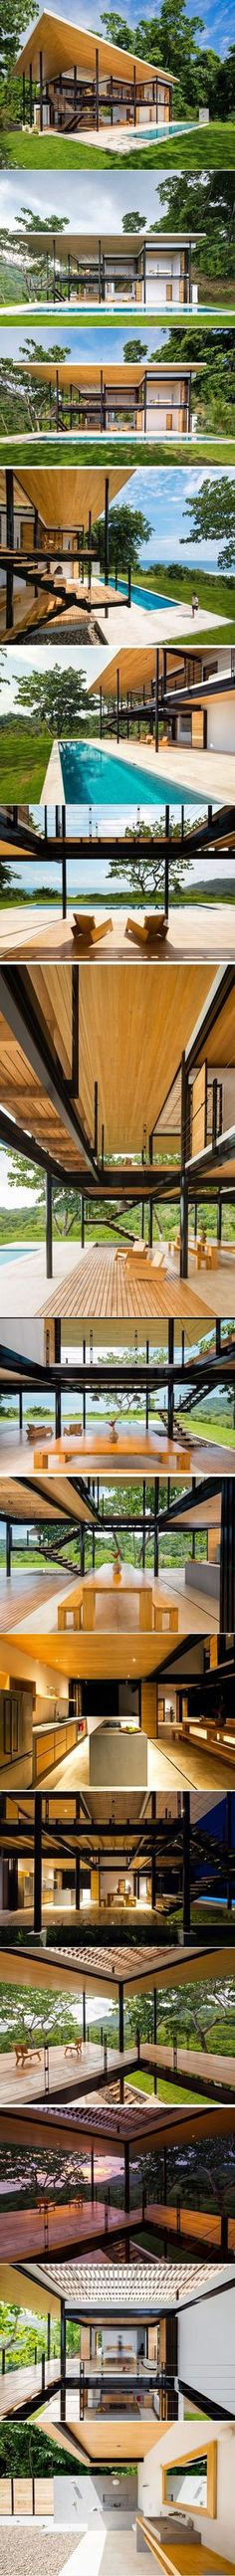 This Tropical House Is Almost Completely Open To The Outside Modern Tropical House, Tropical House Design, Tropical Houses, Architecture Design, Tropical Architecture, Steel Framing, Estilo Tropical, Cottage Design, Glass House